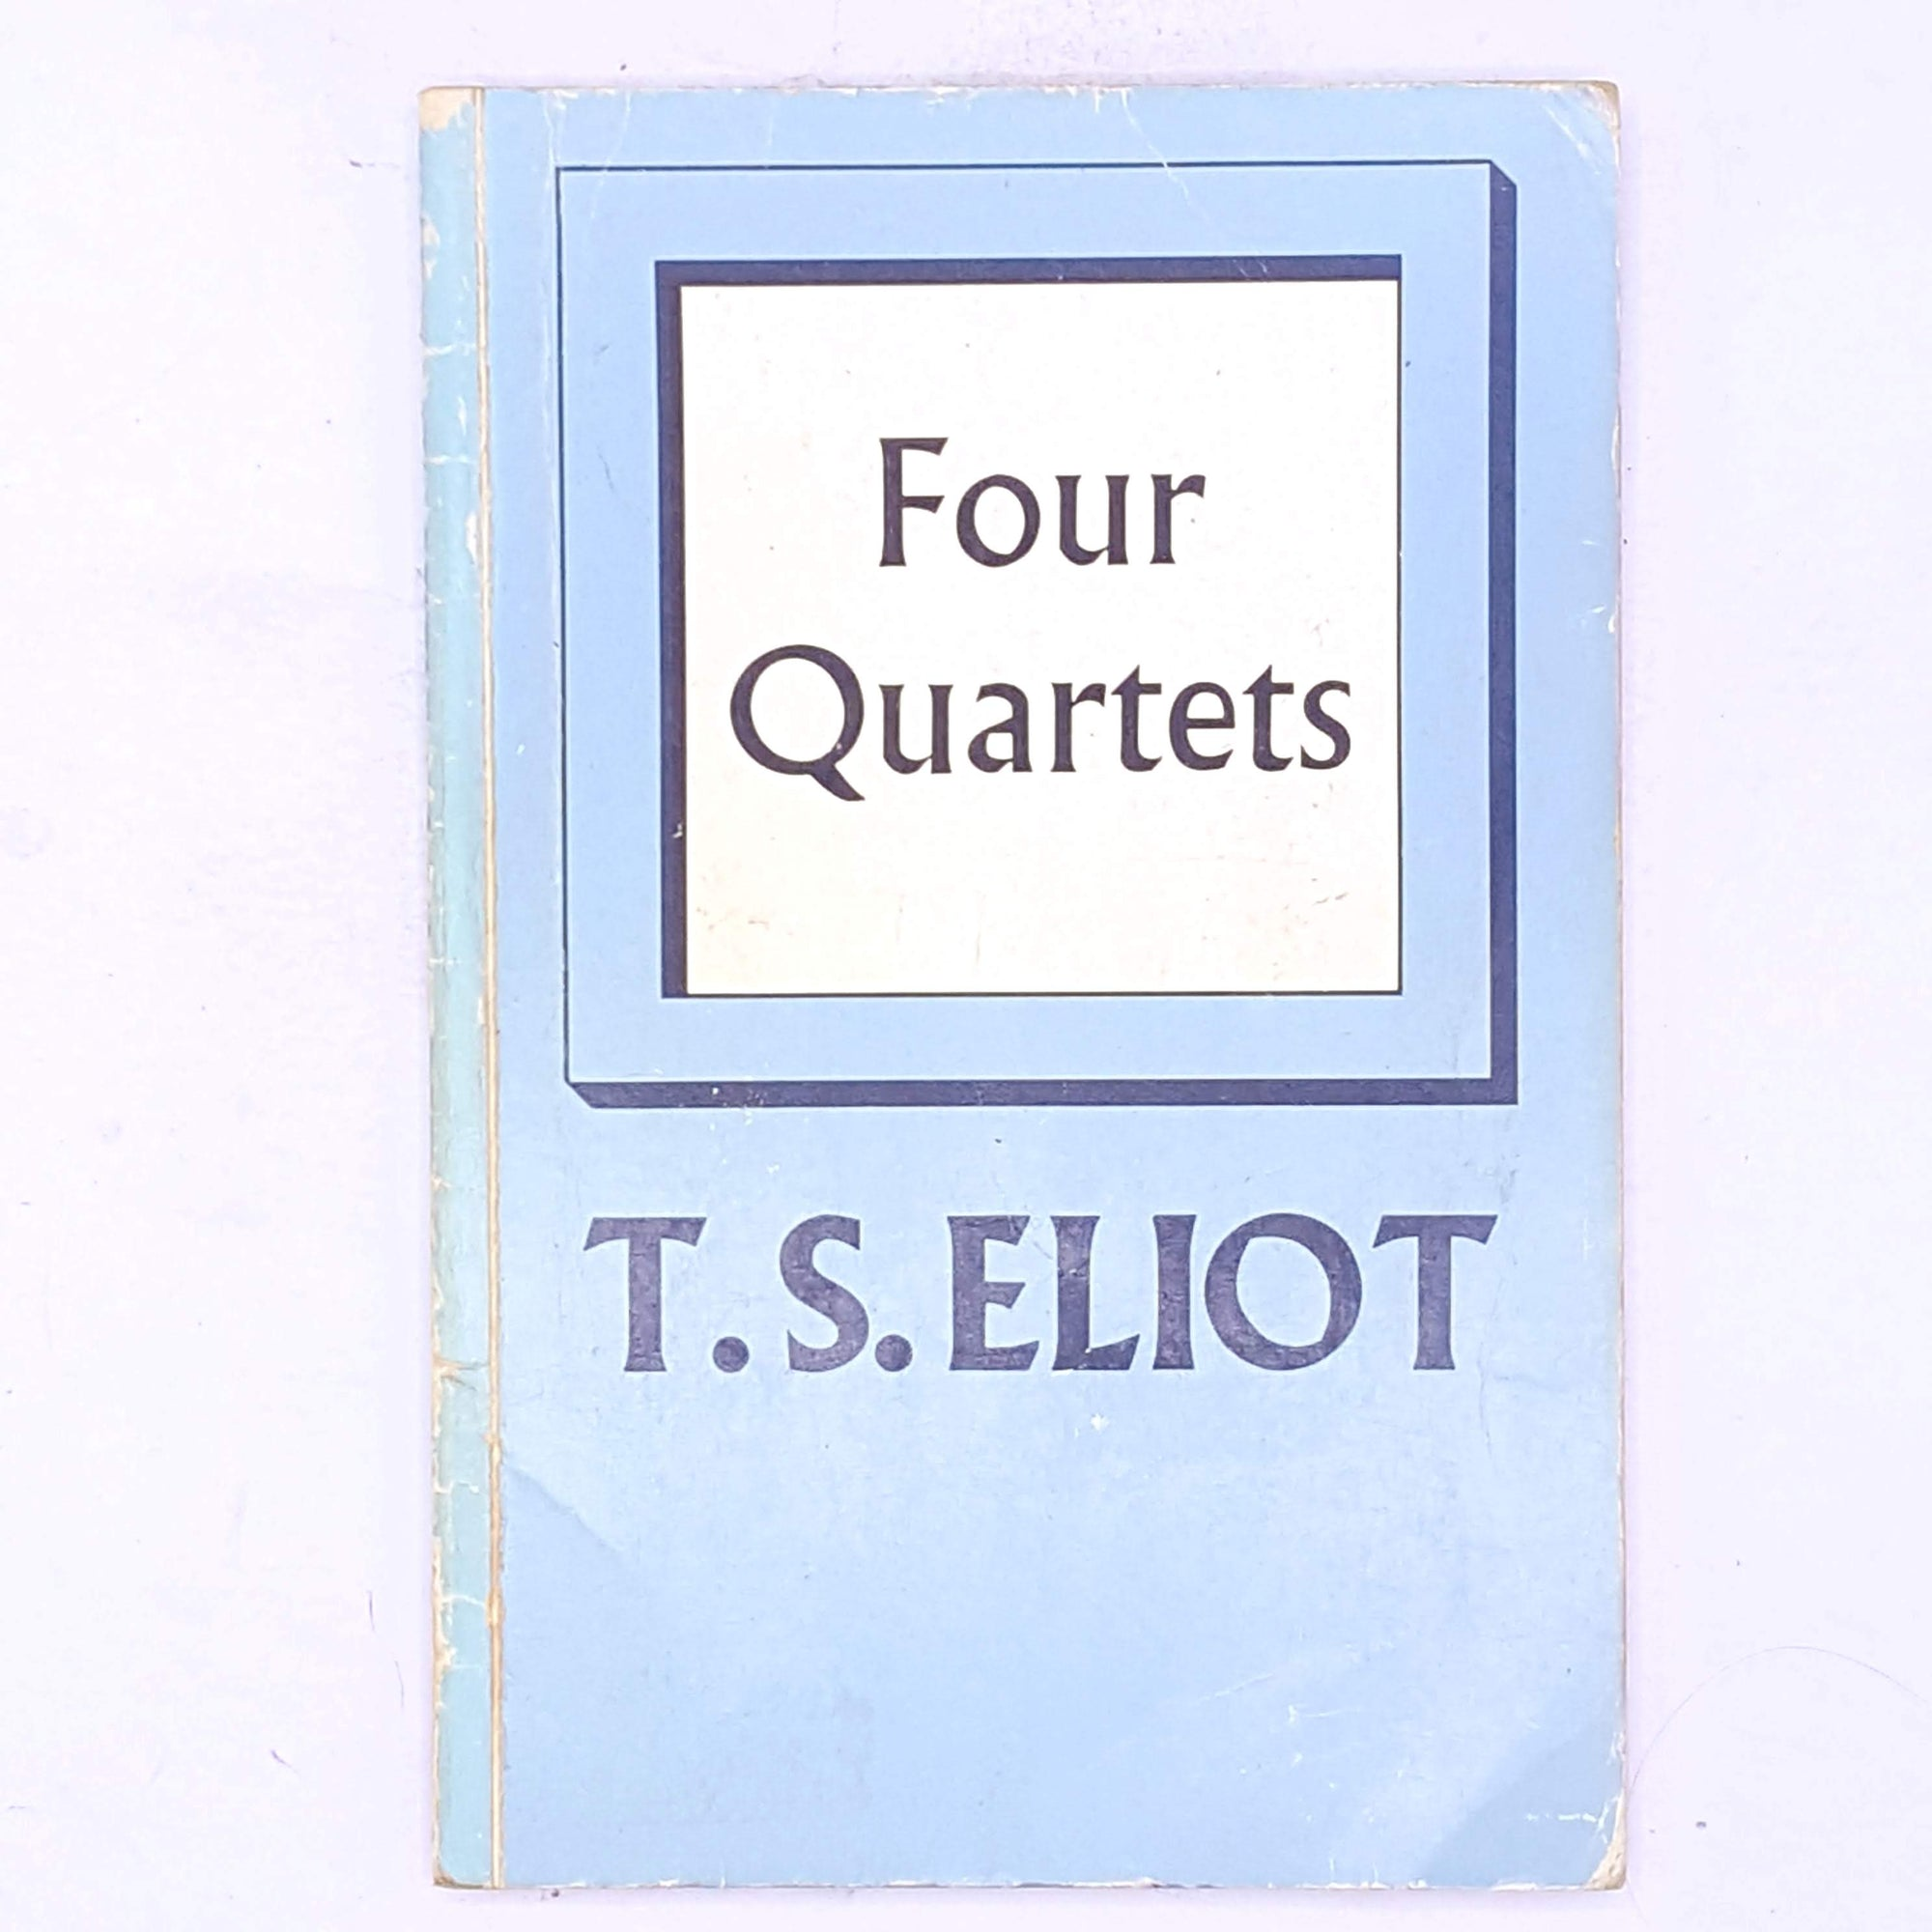 T.S. Eliot - Four Quartets